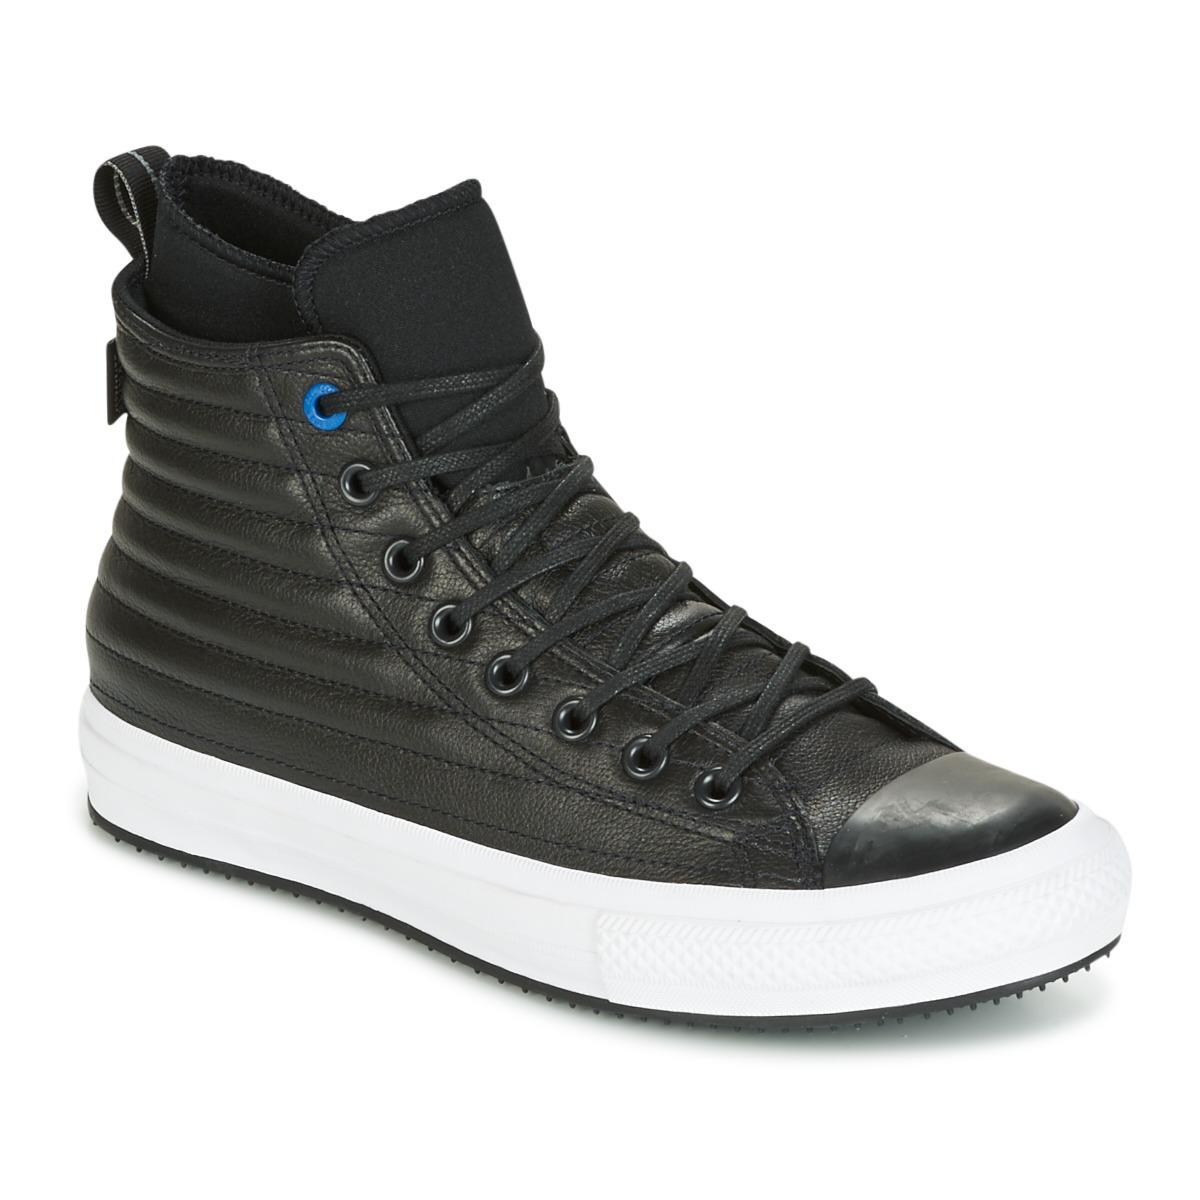 c622a47faf5 Converse Chuck Taylor Wp Boot Quilted Leather Hi Black blue Jay ...